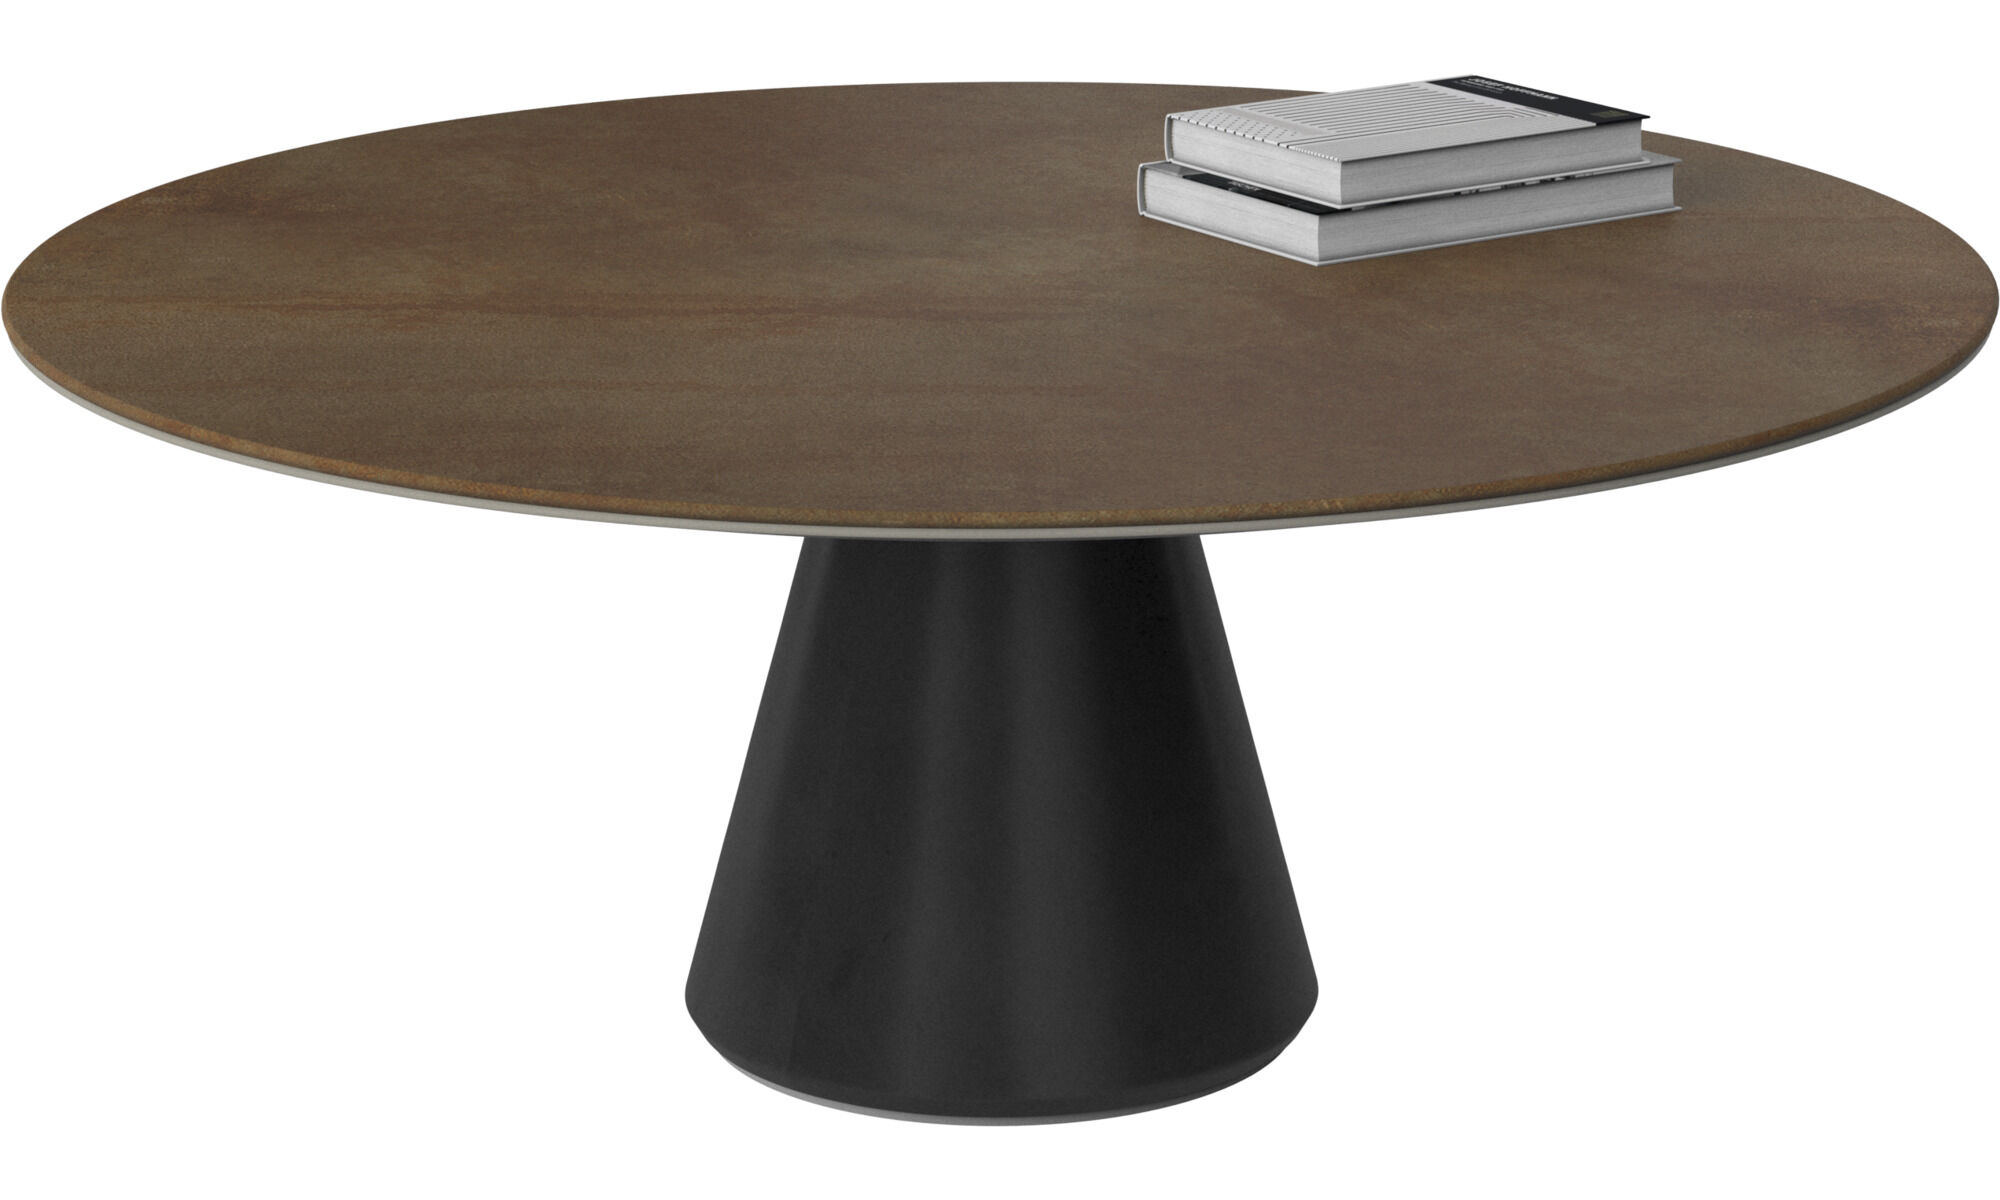 Coffee Tables   Madrid Coffee Table   Round   Brown   Ceramic